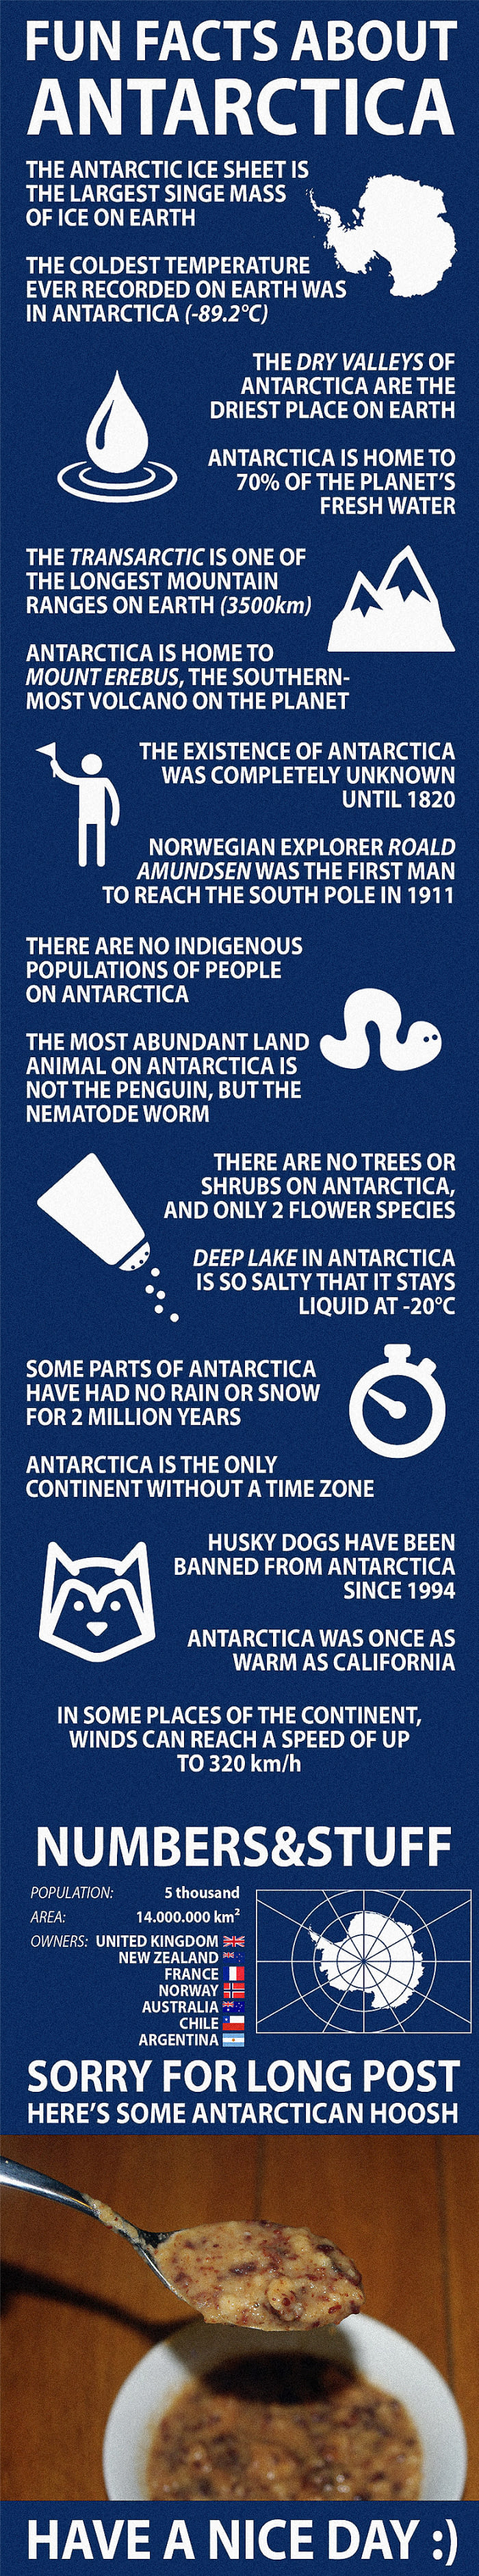 fun facts about antartica, infographic